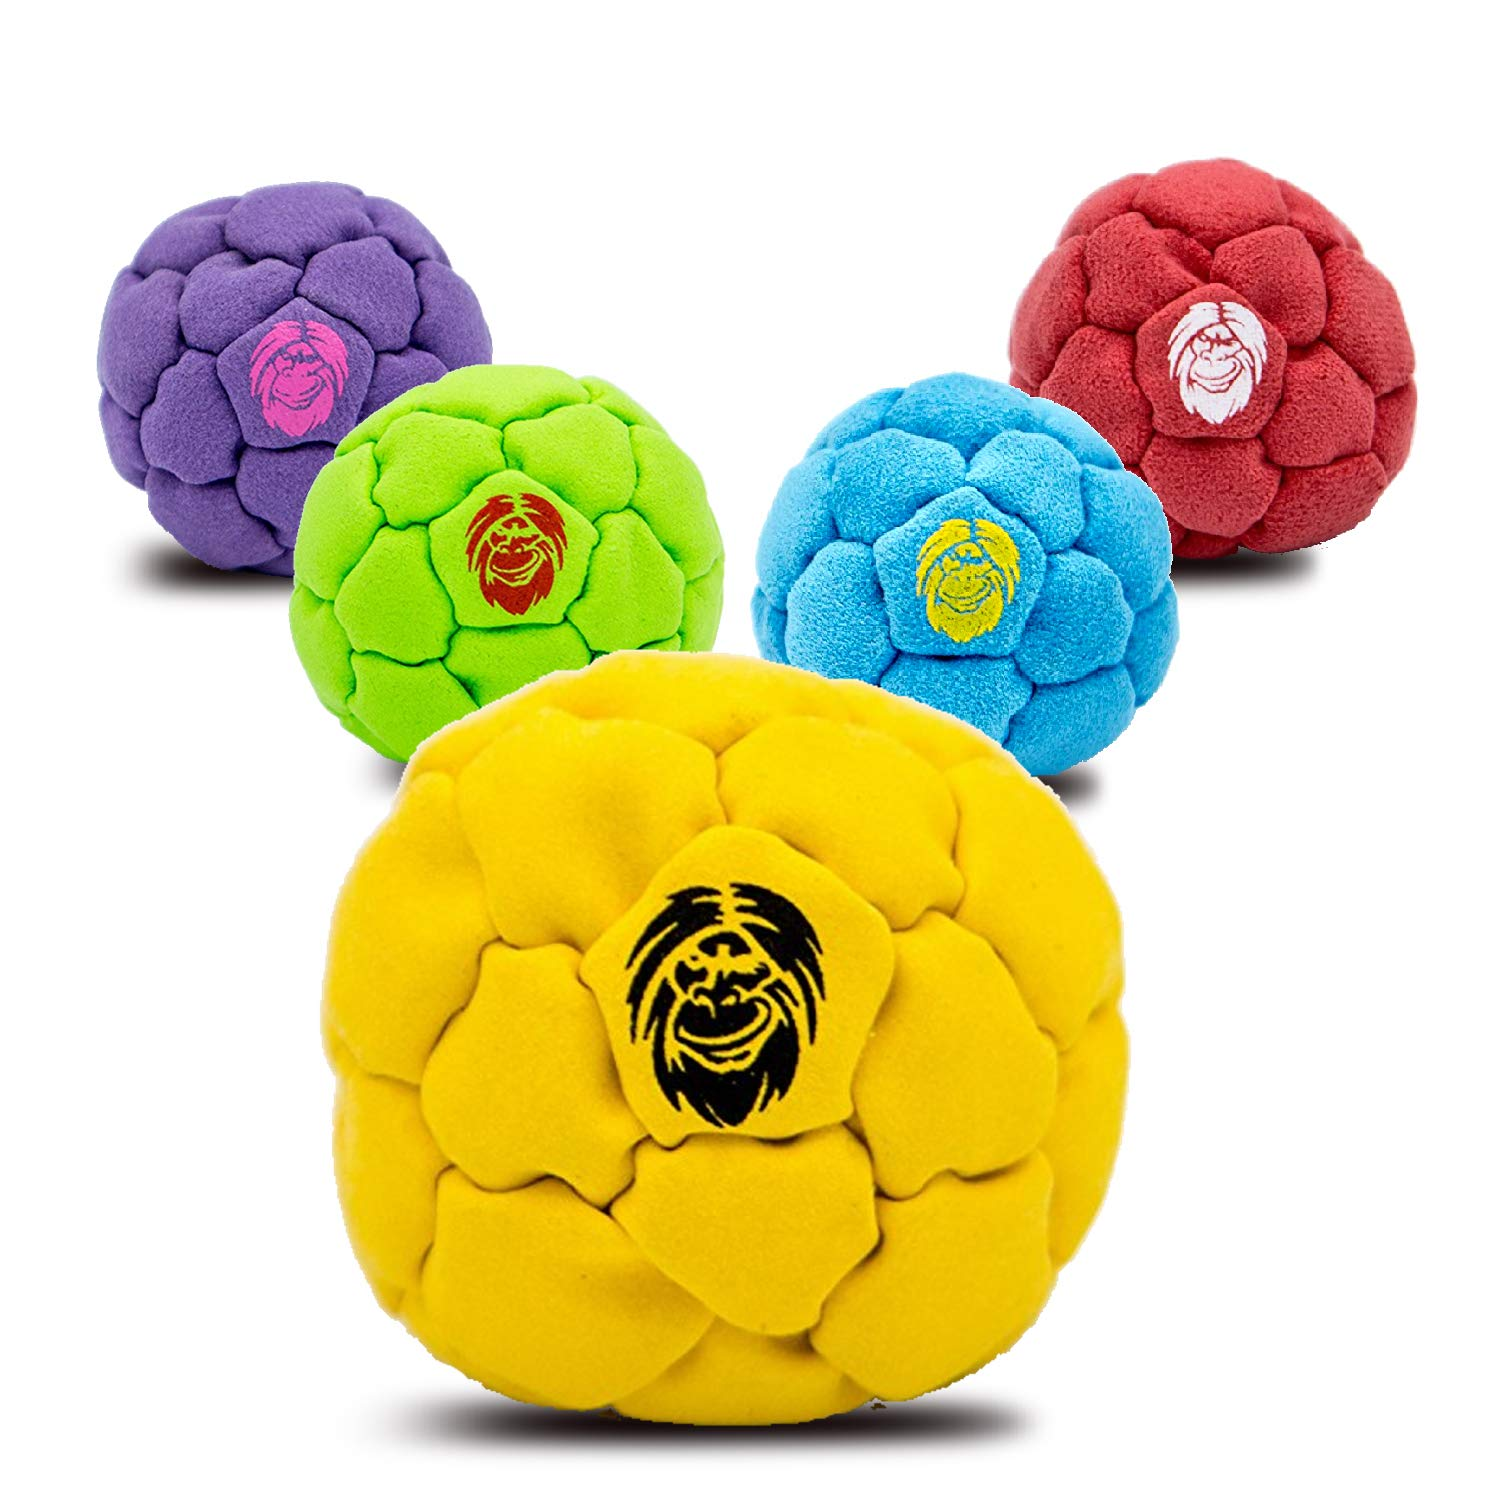 Best Hacky Sack and Footbag | No-Bust Stitching for Hard Kicking | 32 Panel Symmetry for Balance Tricks and Stalling | Professionally Hand-Stitched with Suede Material (Sand, Yellow) by Bigfoot Bags